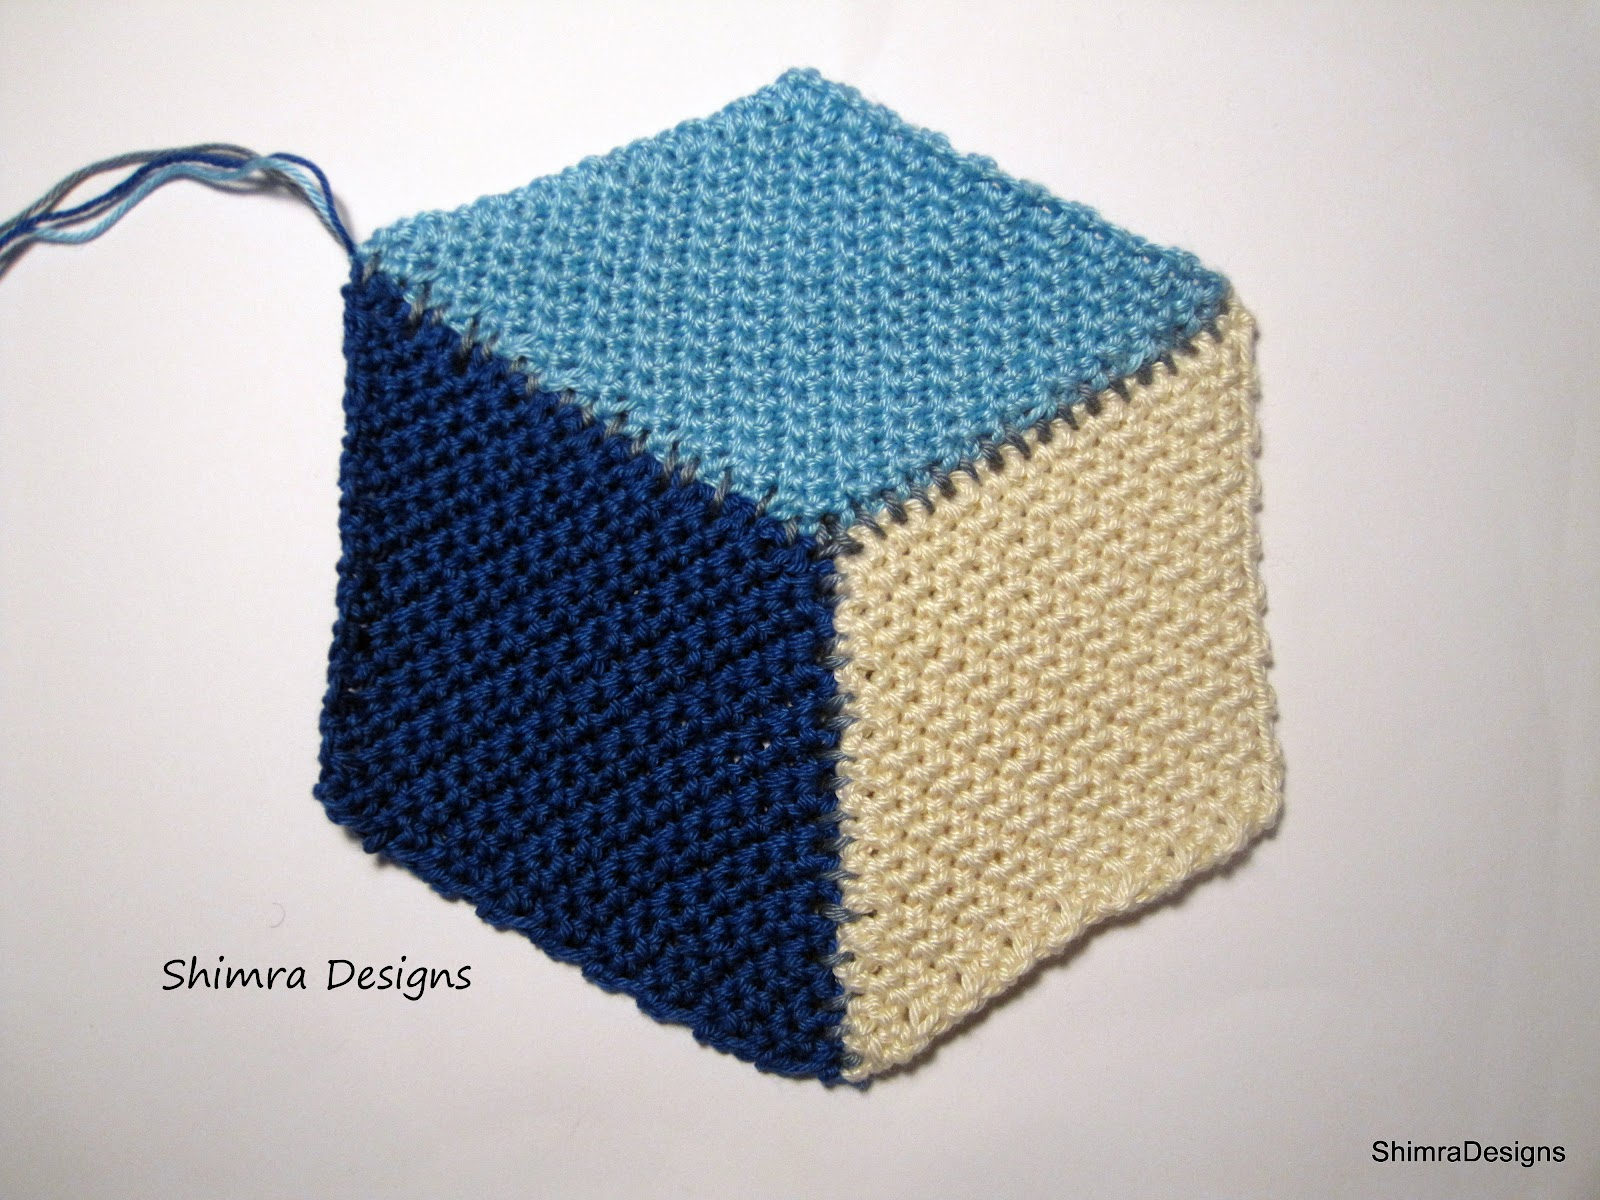 Shimra designs photo tutorial how to crochet a triangle and a the vasarely cube can you see the 3d effect dt1010fo